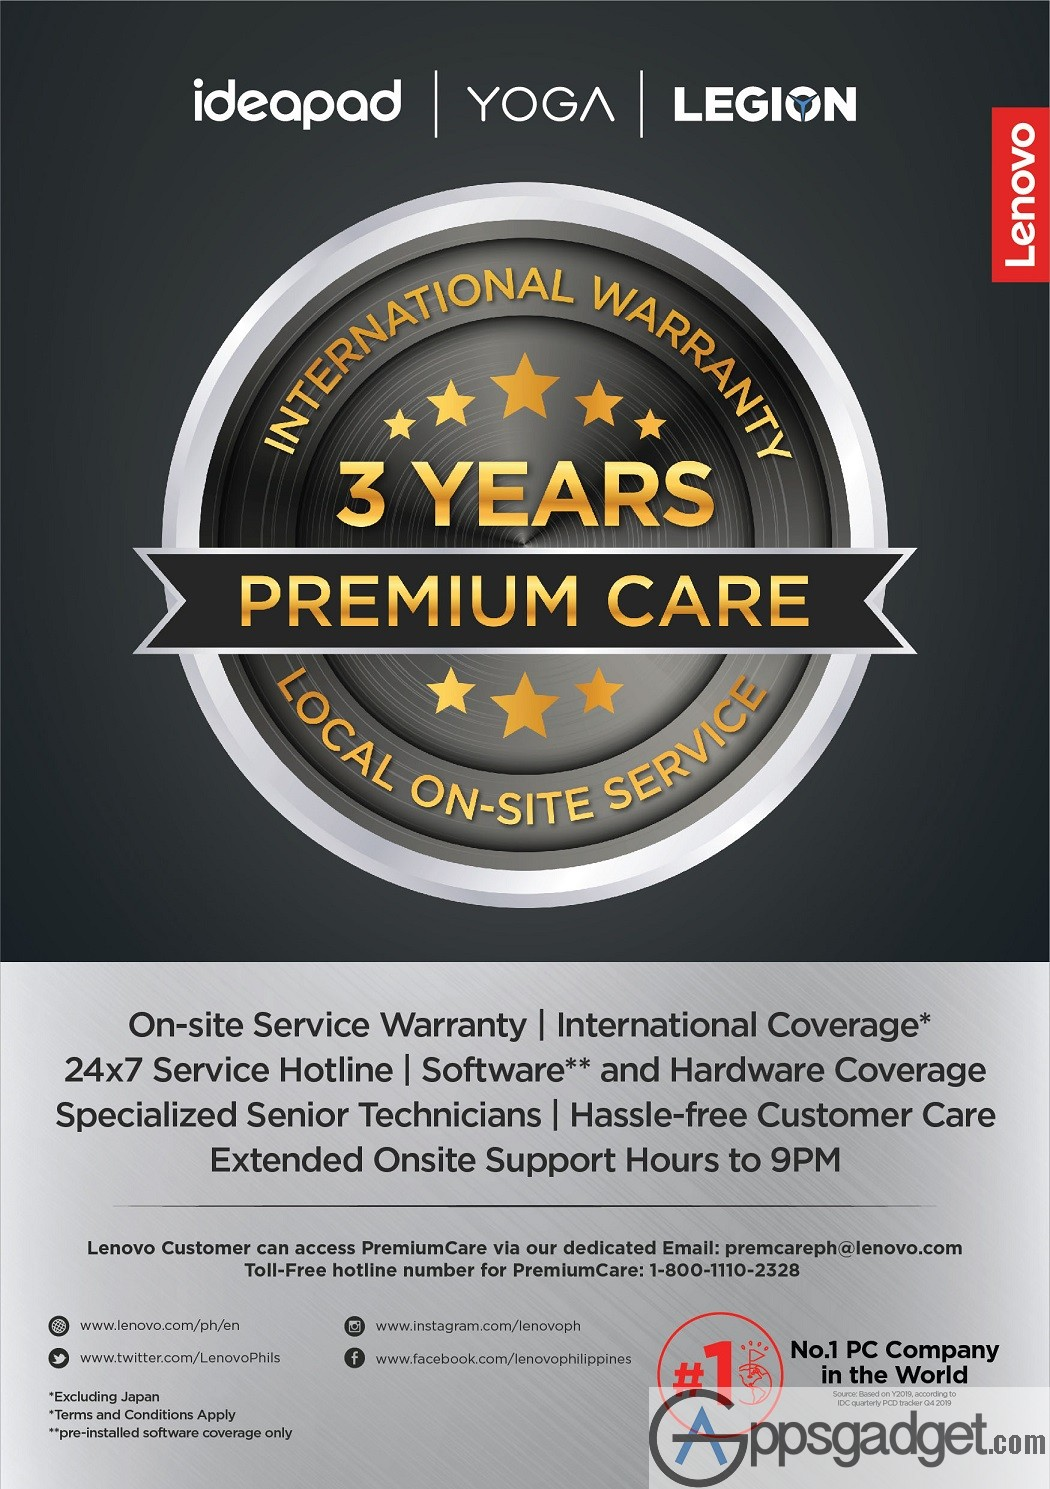 Lenovo Unveils 3 Year Premium Care Service to Mitigate Warranty issues During Pandemic